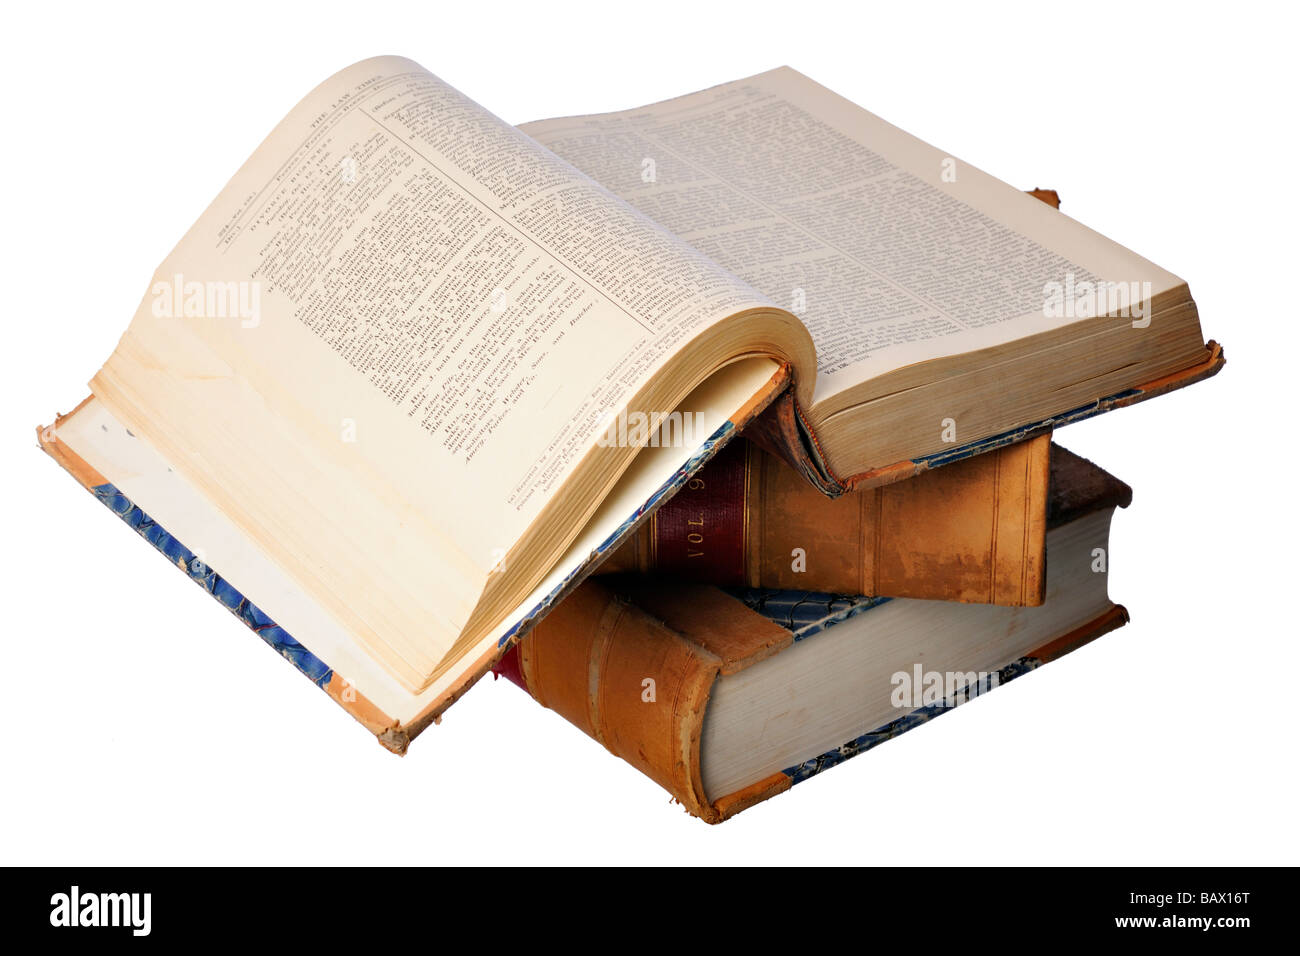 Old law books - Stock Image